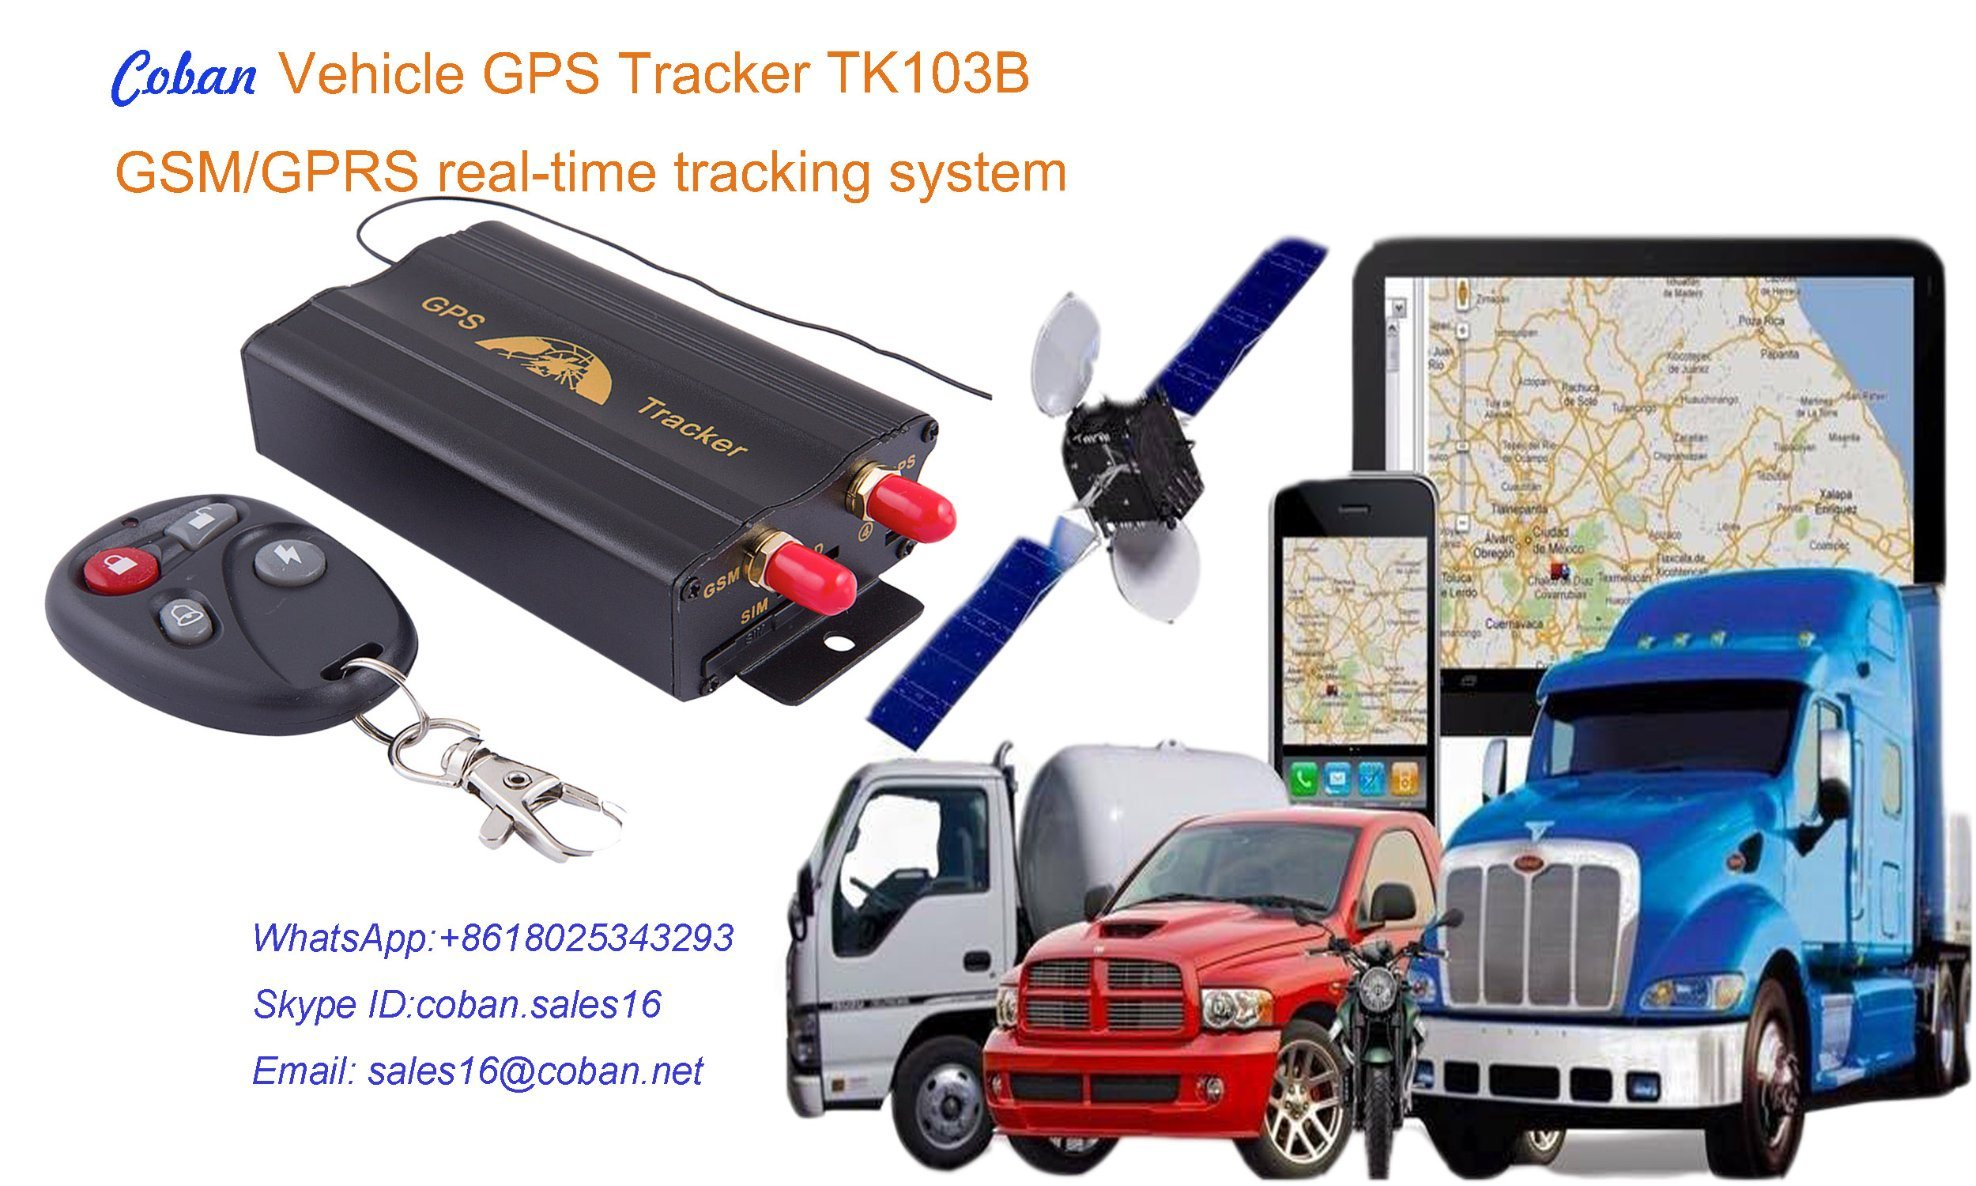 Vehicle Gps Tracking >> Hot Item Imei Number Tracking Online Tk103b Vehicle Gps Tracker With Free Tracking Software